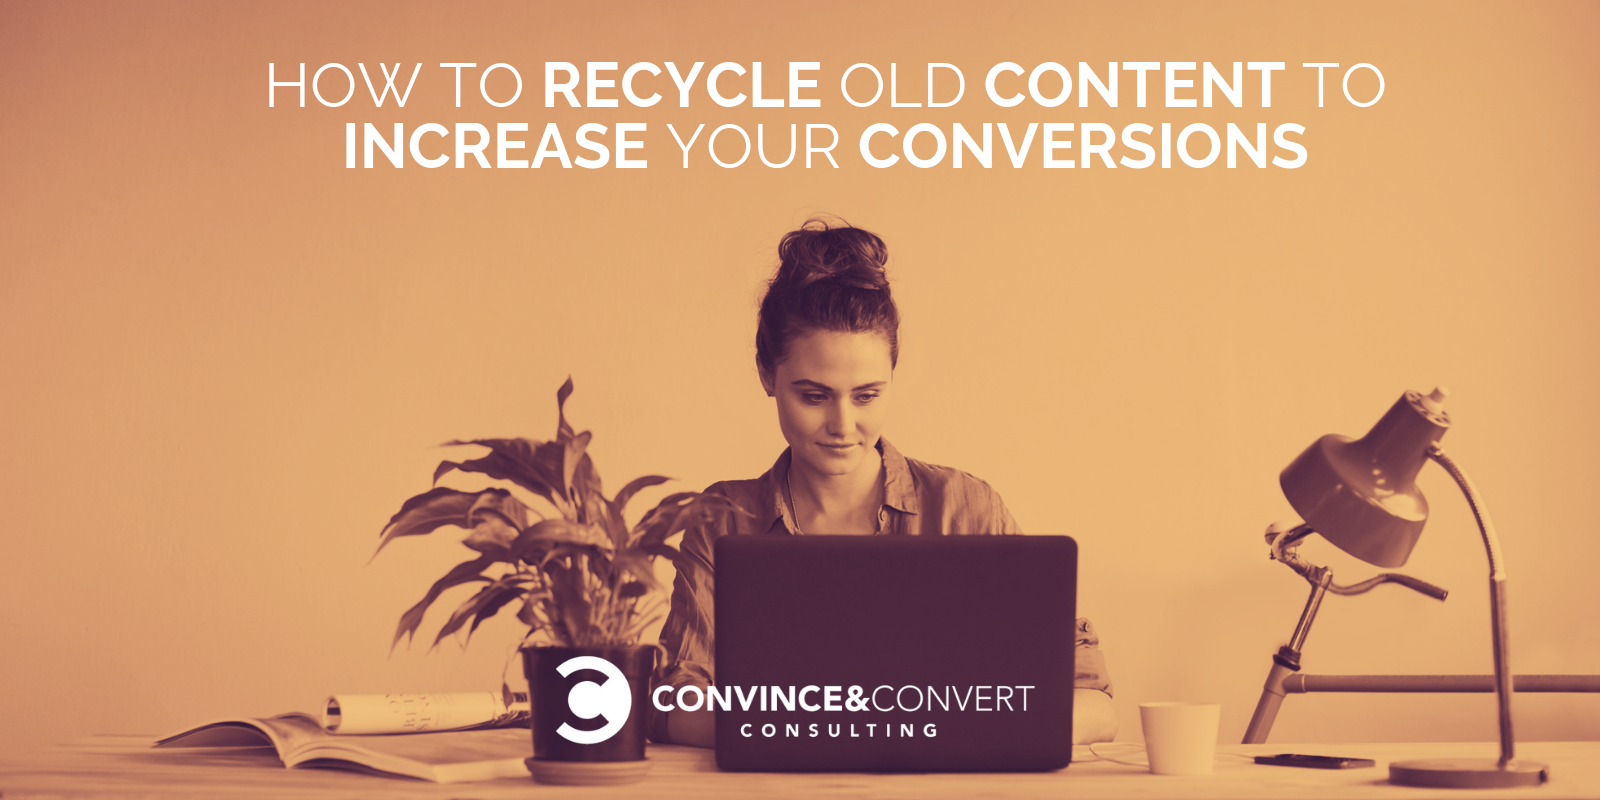 how to recycle old content to increase conversions